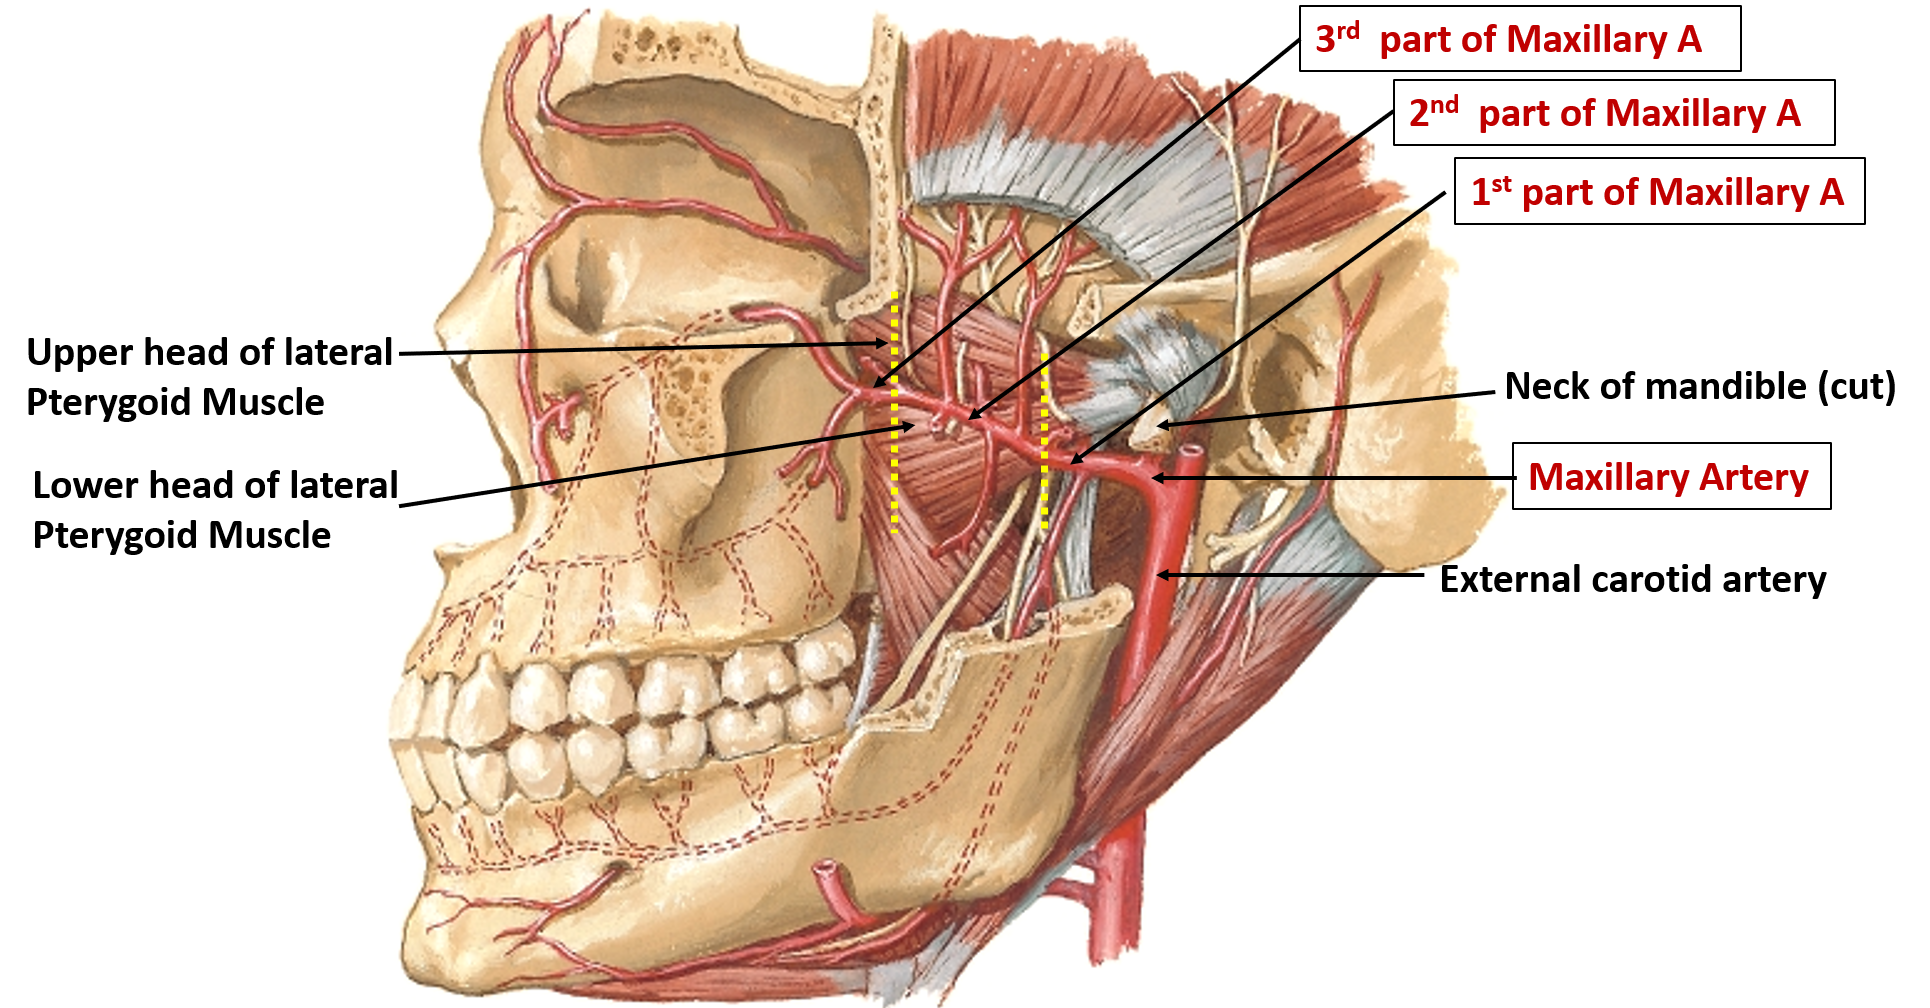 Maxillary Artery - Origin, Parts, Branches and Structures Supplied -